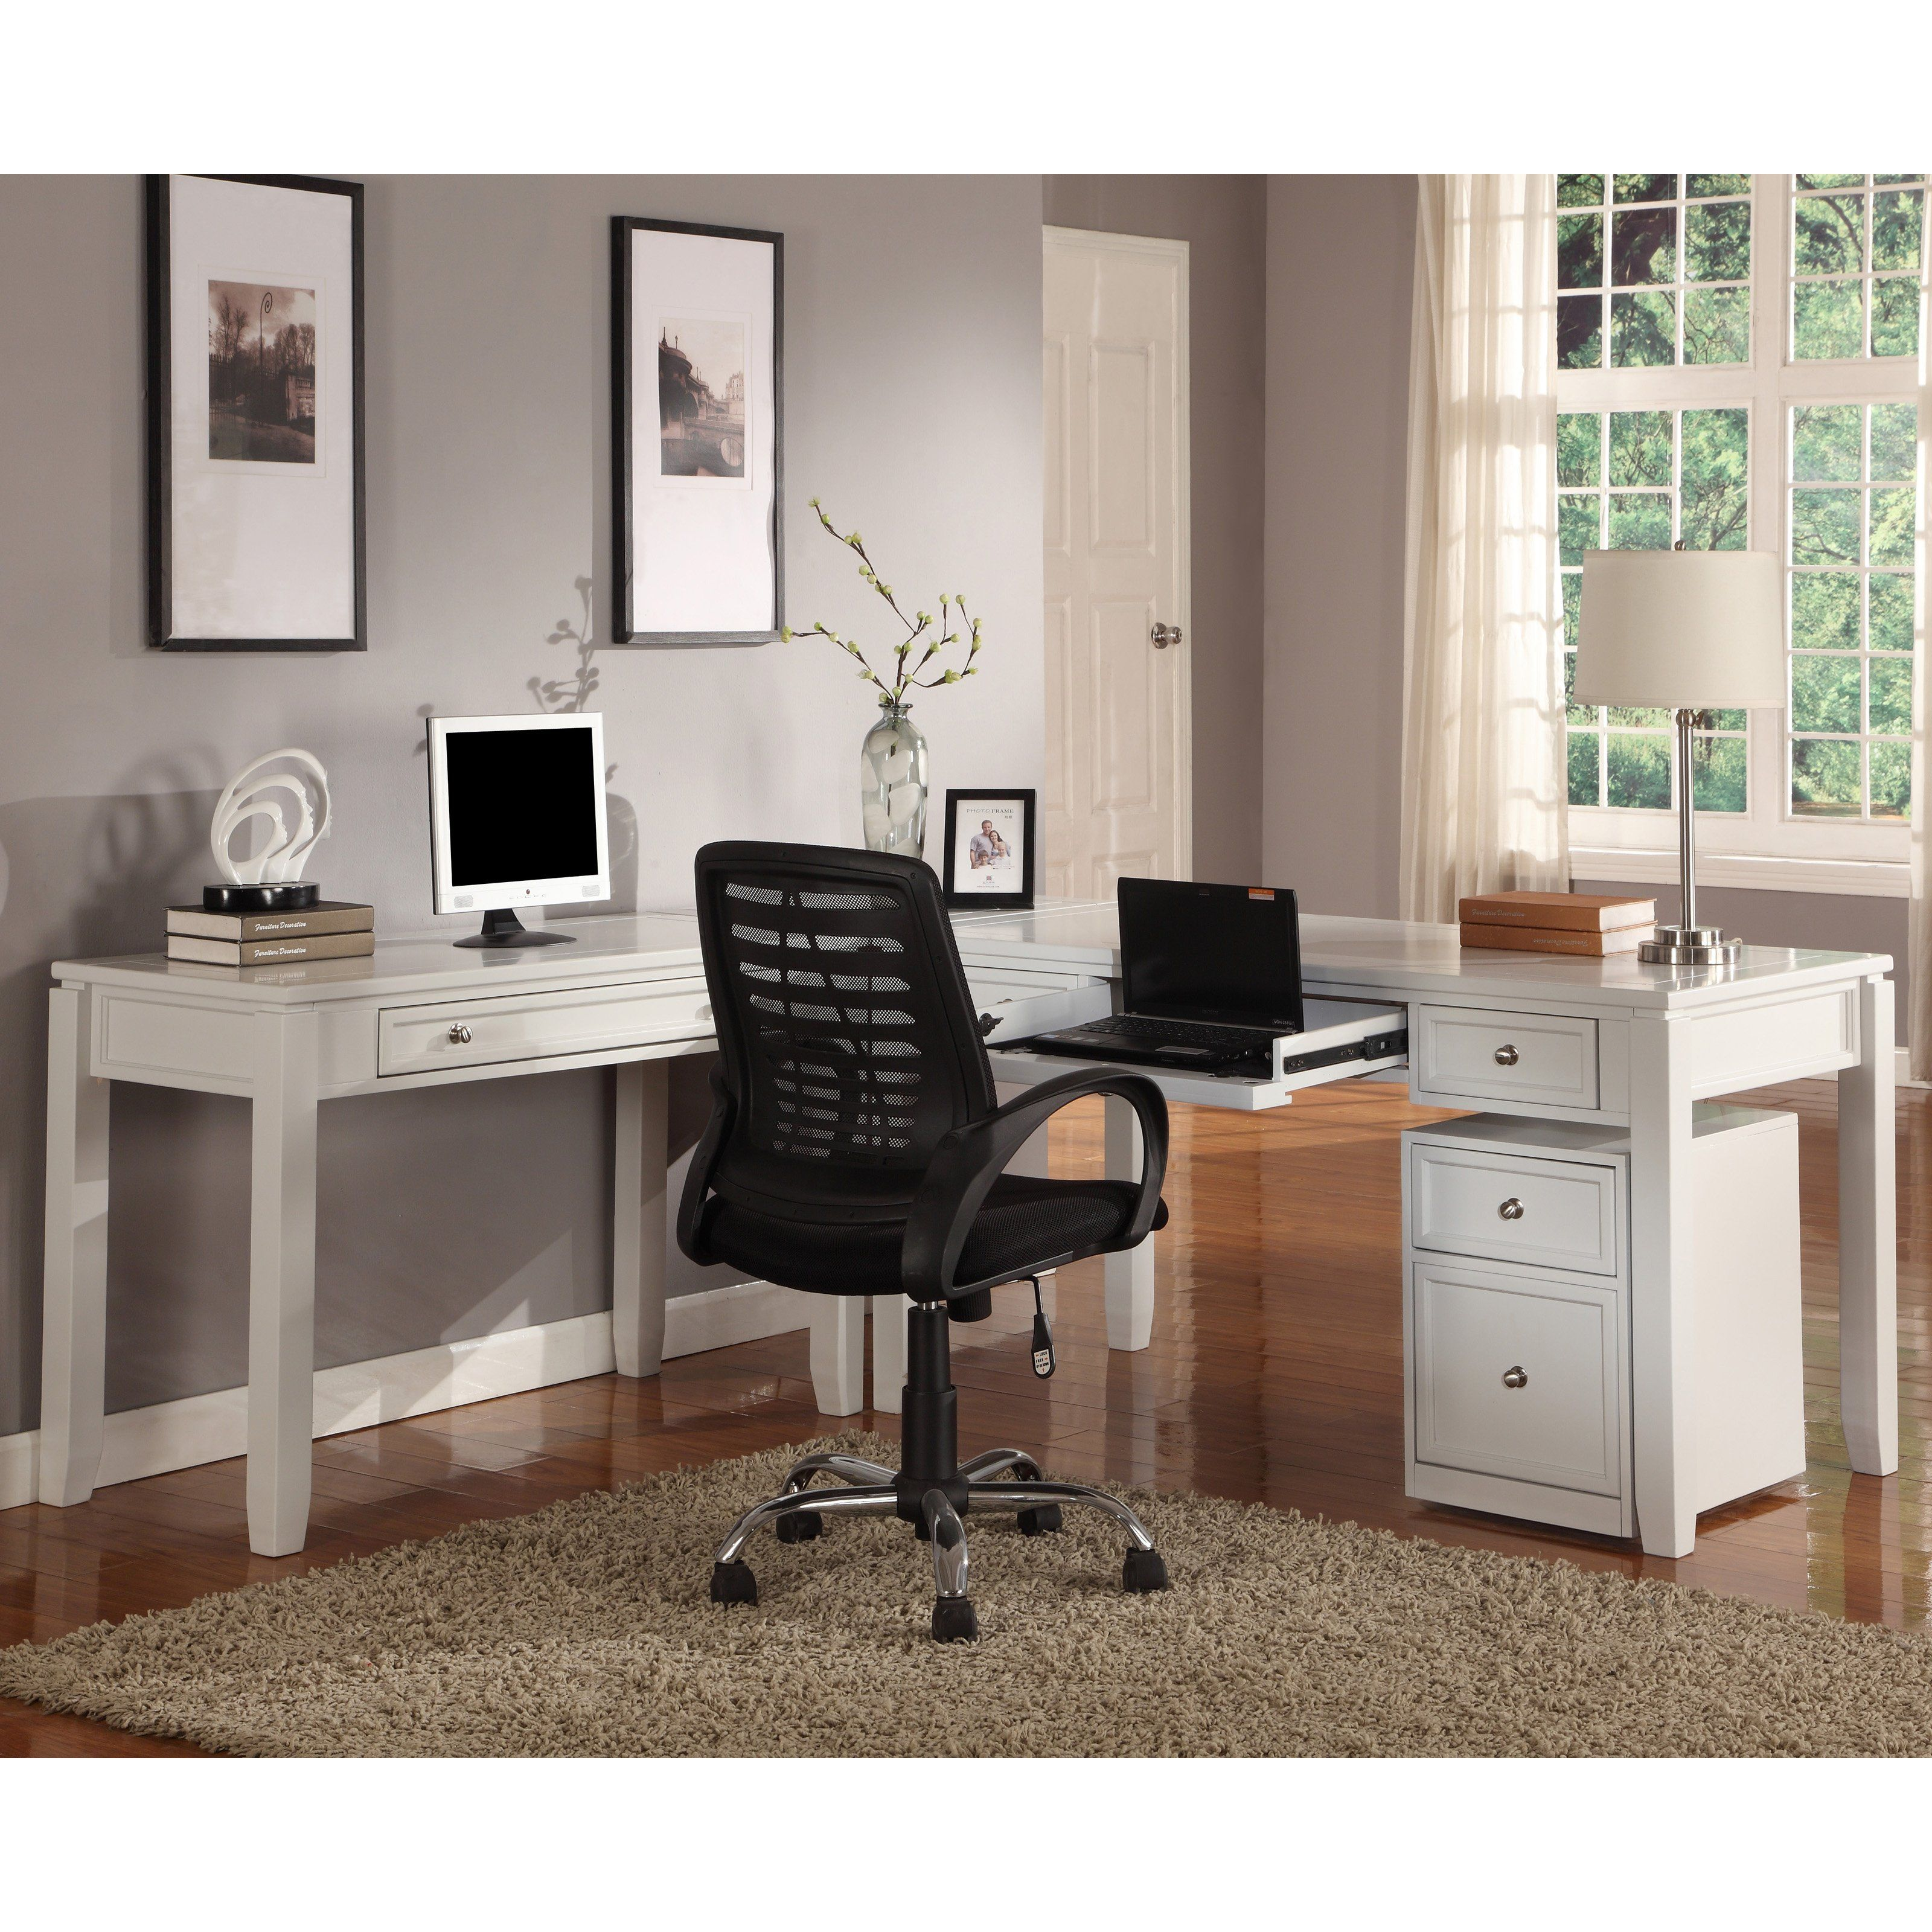 gallery choosing office cabinets white. Parker House Boca L-Shaped Desk - Cottage White Modern Desks Hayneedle Gallery Choosing Office Cabinets